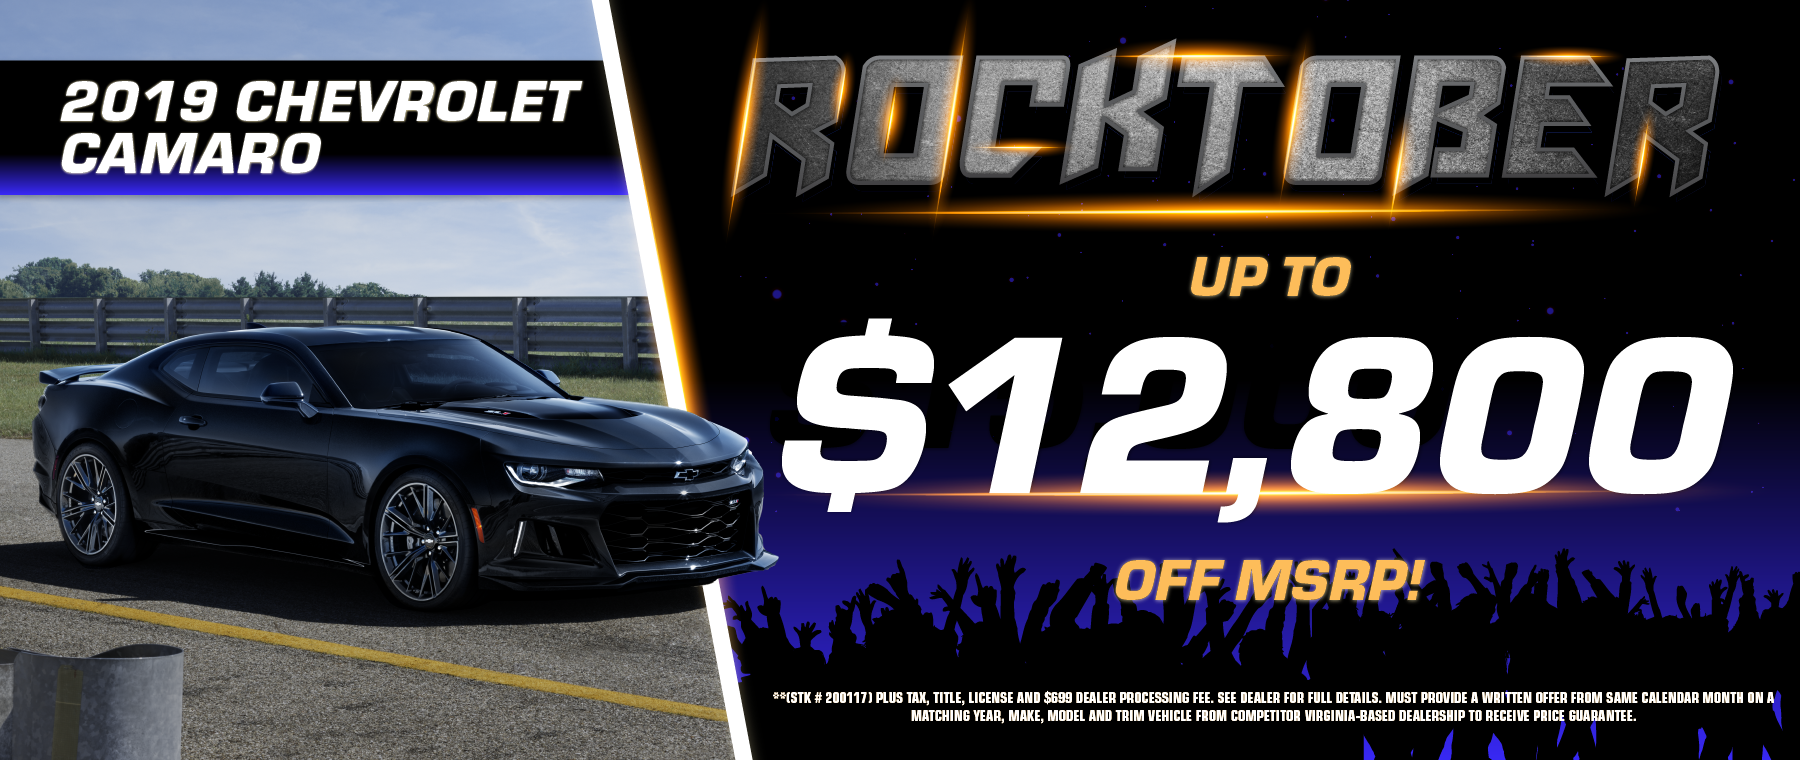 2019 Chevy Camaro Offer!